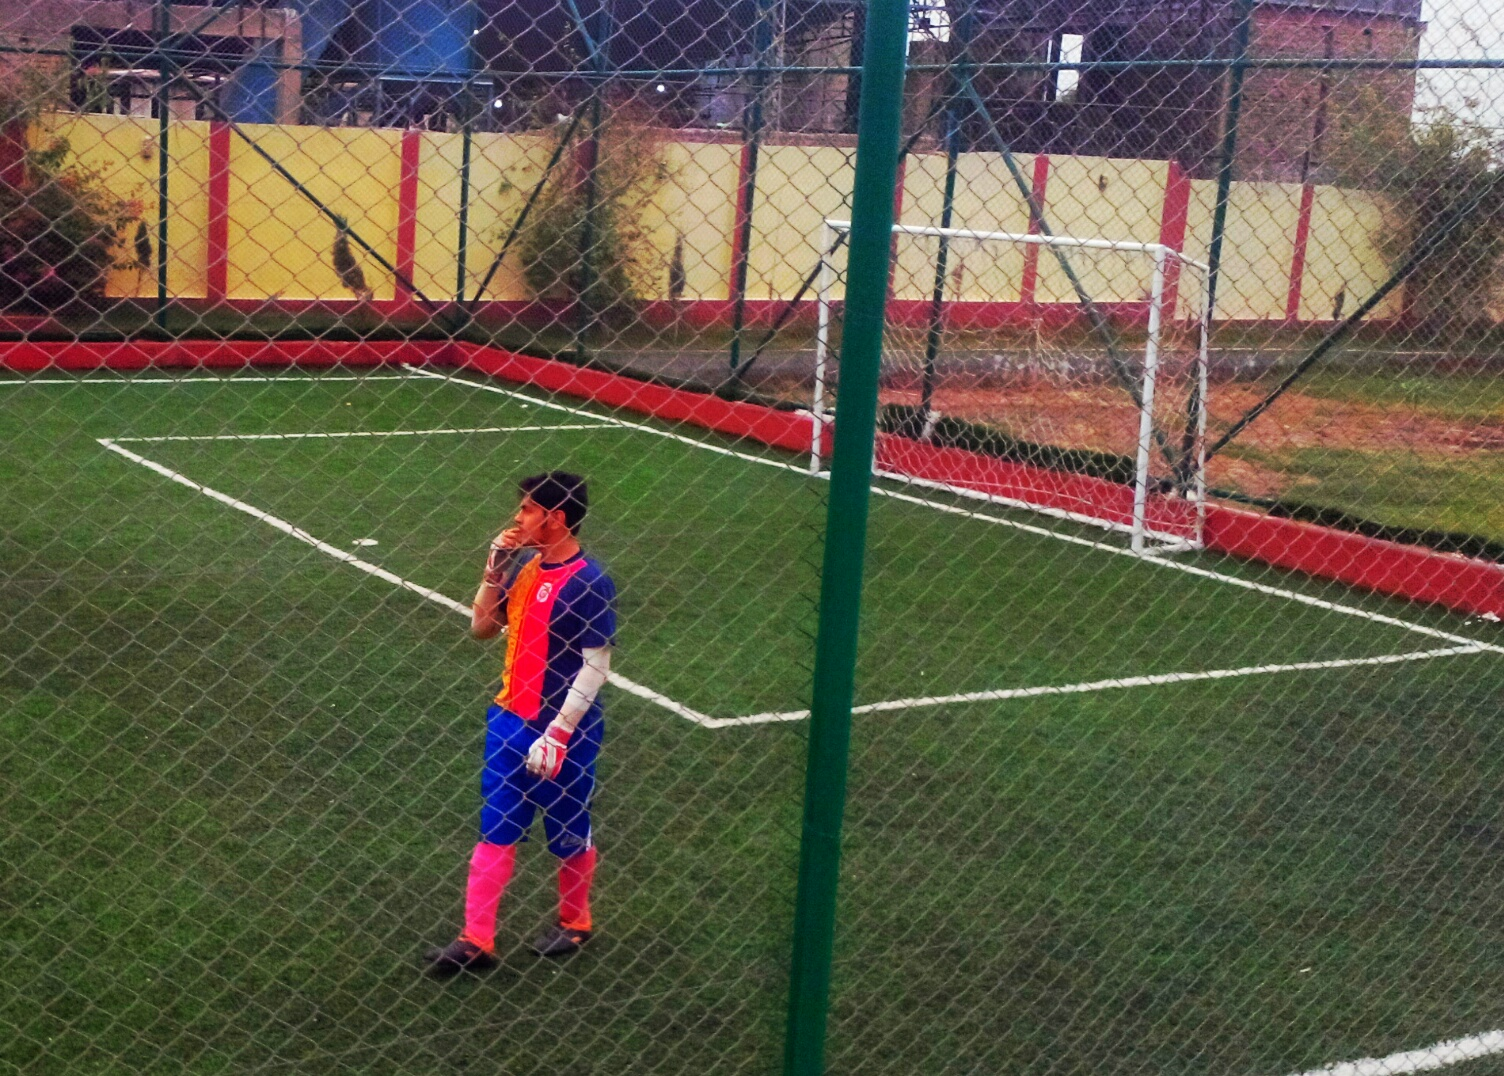 """FPDC Stories: Zakria Fazal, """"I am playing in the streets to be a player i dreamed of"""""""